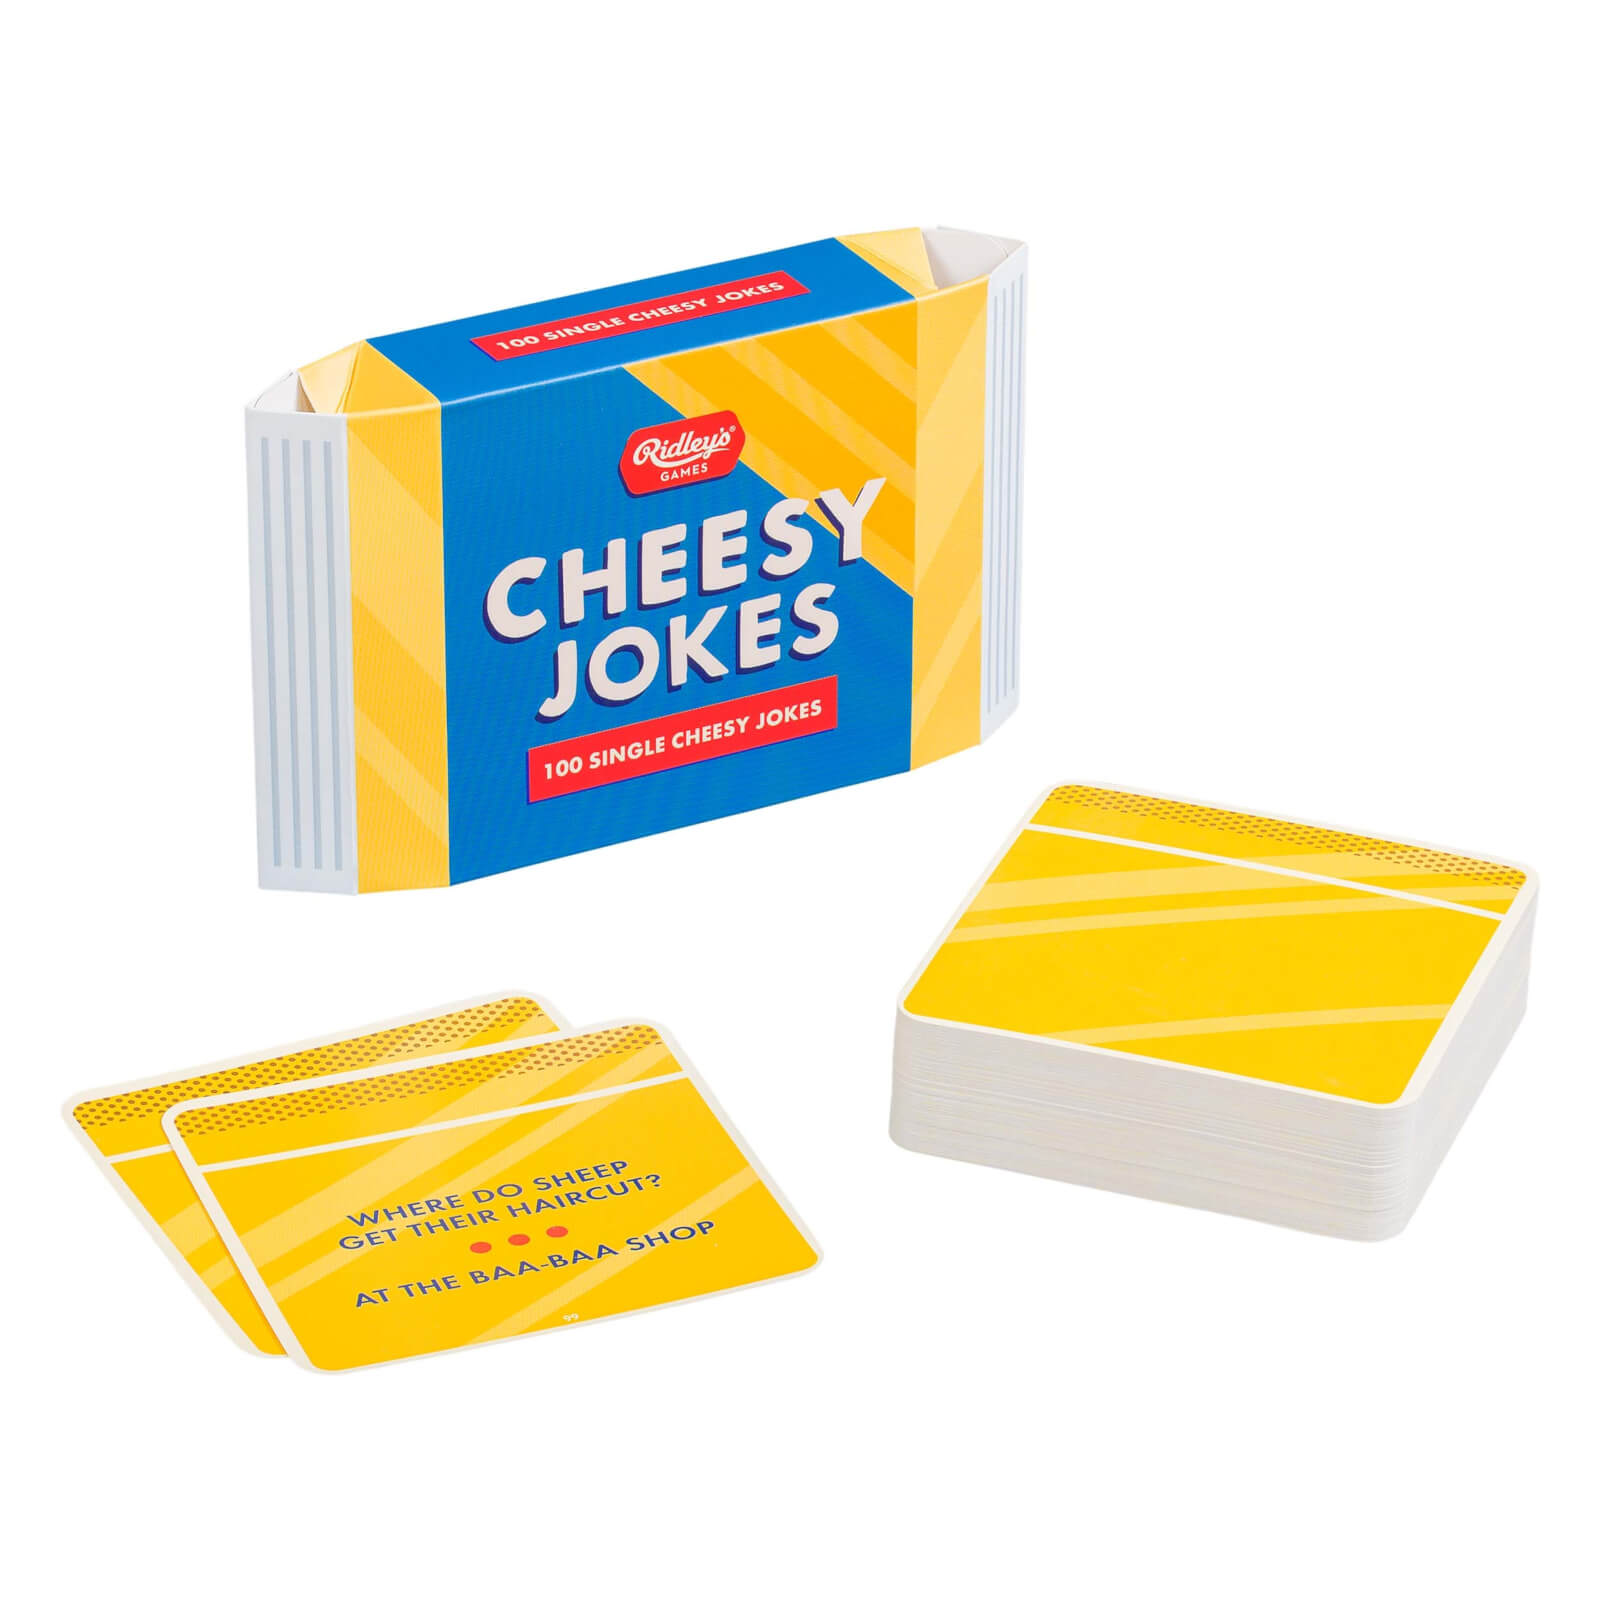 Image of Ridley's Games 100 Single Cheesy Jokes